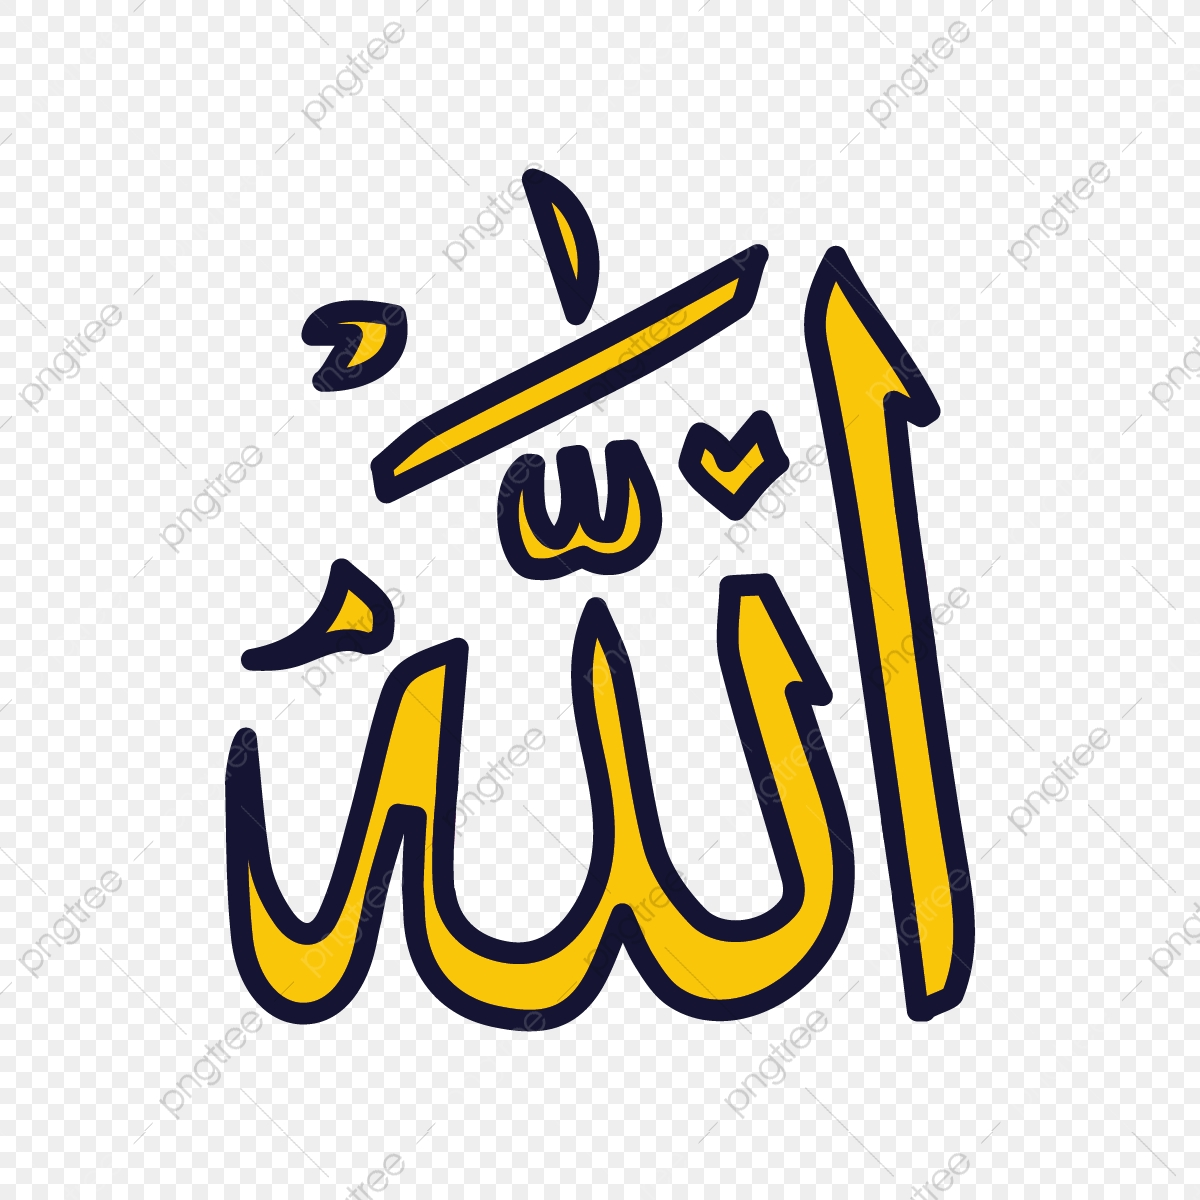 beautiful arabic allah icon beautiful icons islam muslim png and vector with transparent background for free download https pngtree com freepng beautiful arabic allah icon 4368322 html